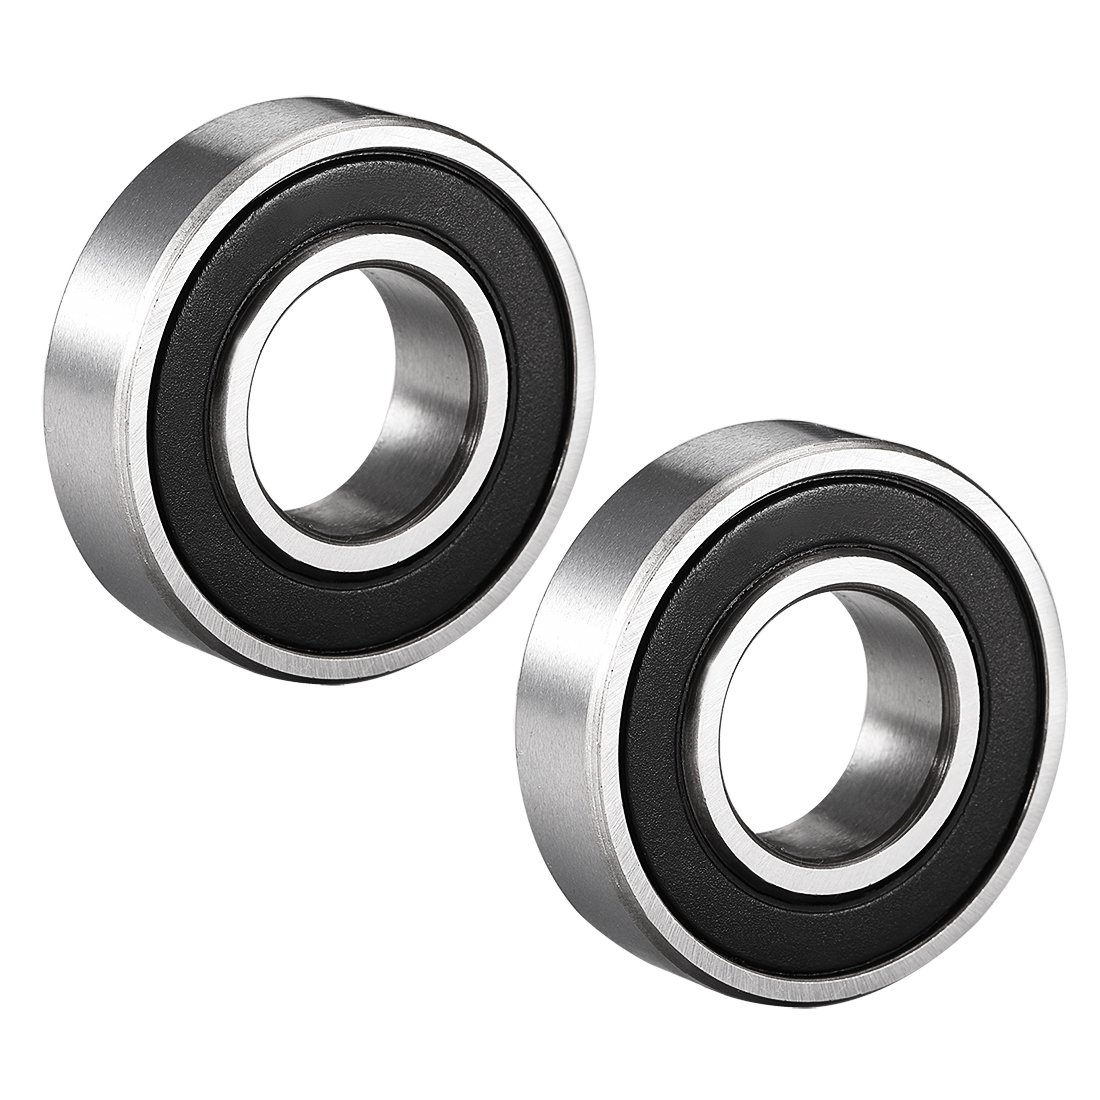 sourcing map 6000-2RS Ball Bearing 10mm x 26mm x 8mm Double Sealed 180100 Deep Groove Bearings Pack of 10 Carbon Steel